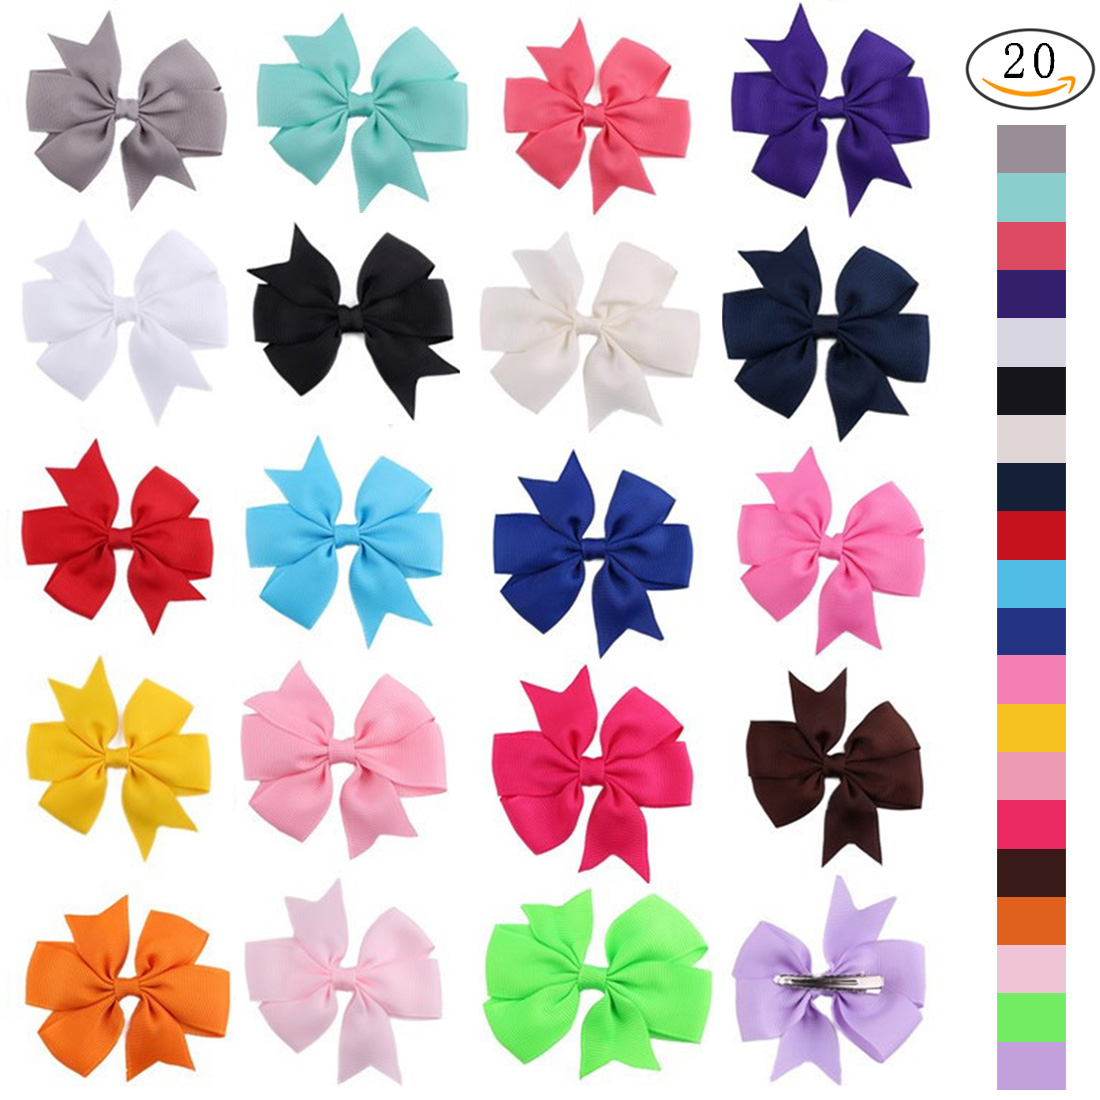 Nlife 20Pcs Grosgrain Hair Bows with Alligator Teeth Clips for Girls Baby Kids